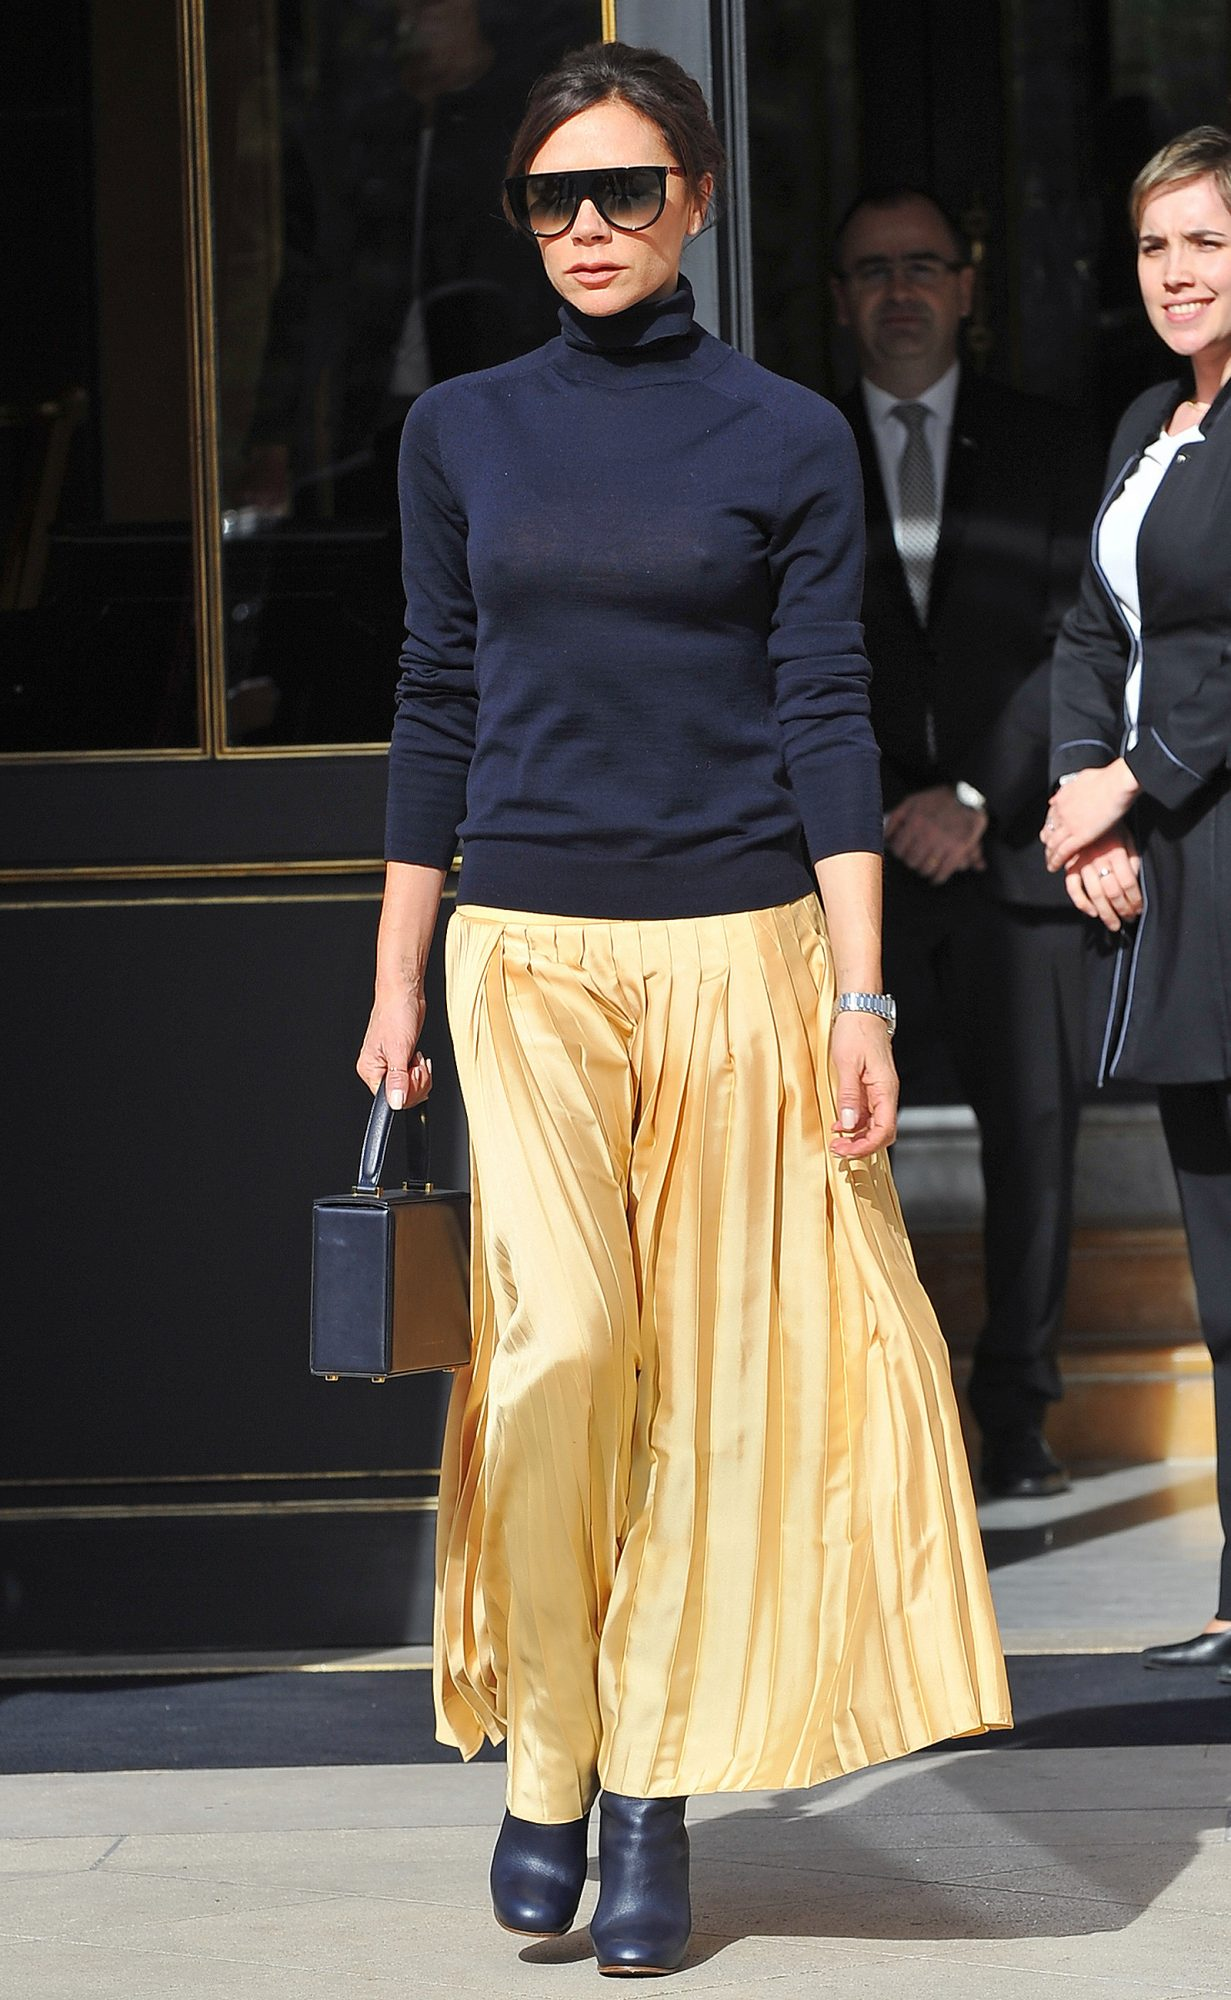 Victoria Beckham goes at Gare du Nord to take a Eurostar back to London in Paris